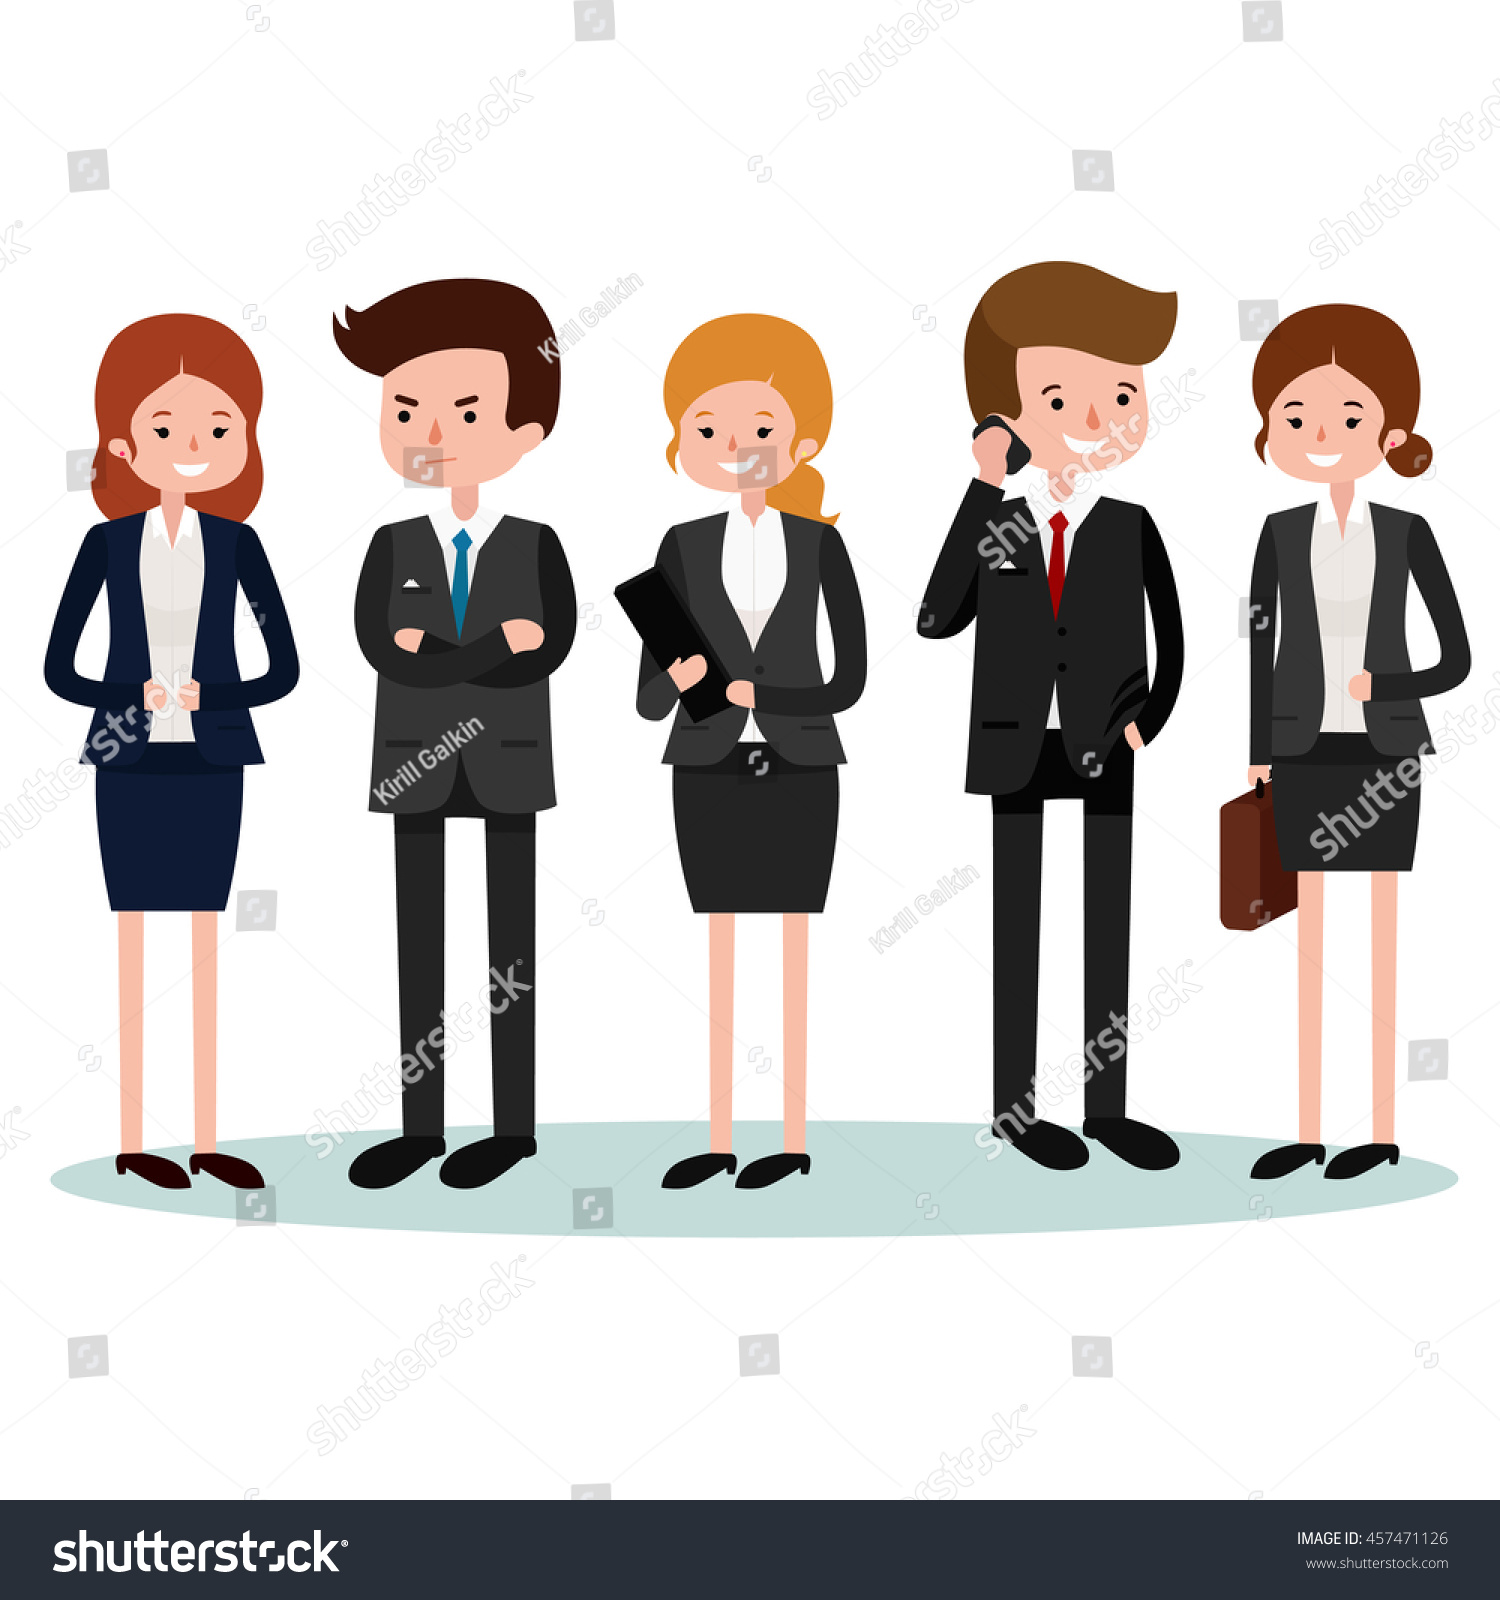 Group Of 6 Cartoon Characters : Business people group office workers stock vector